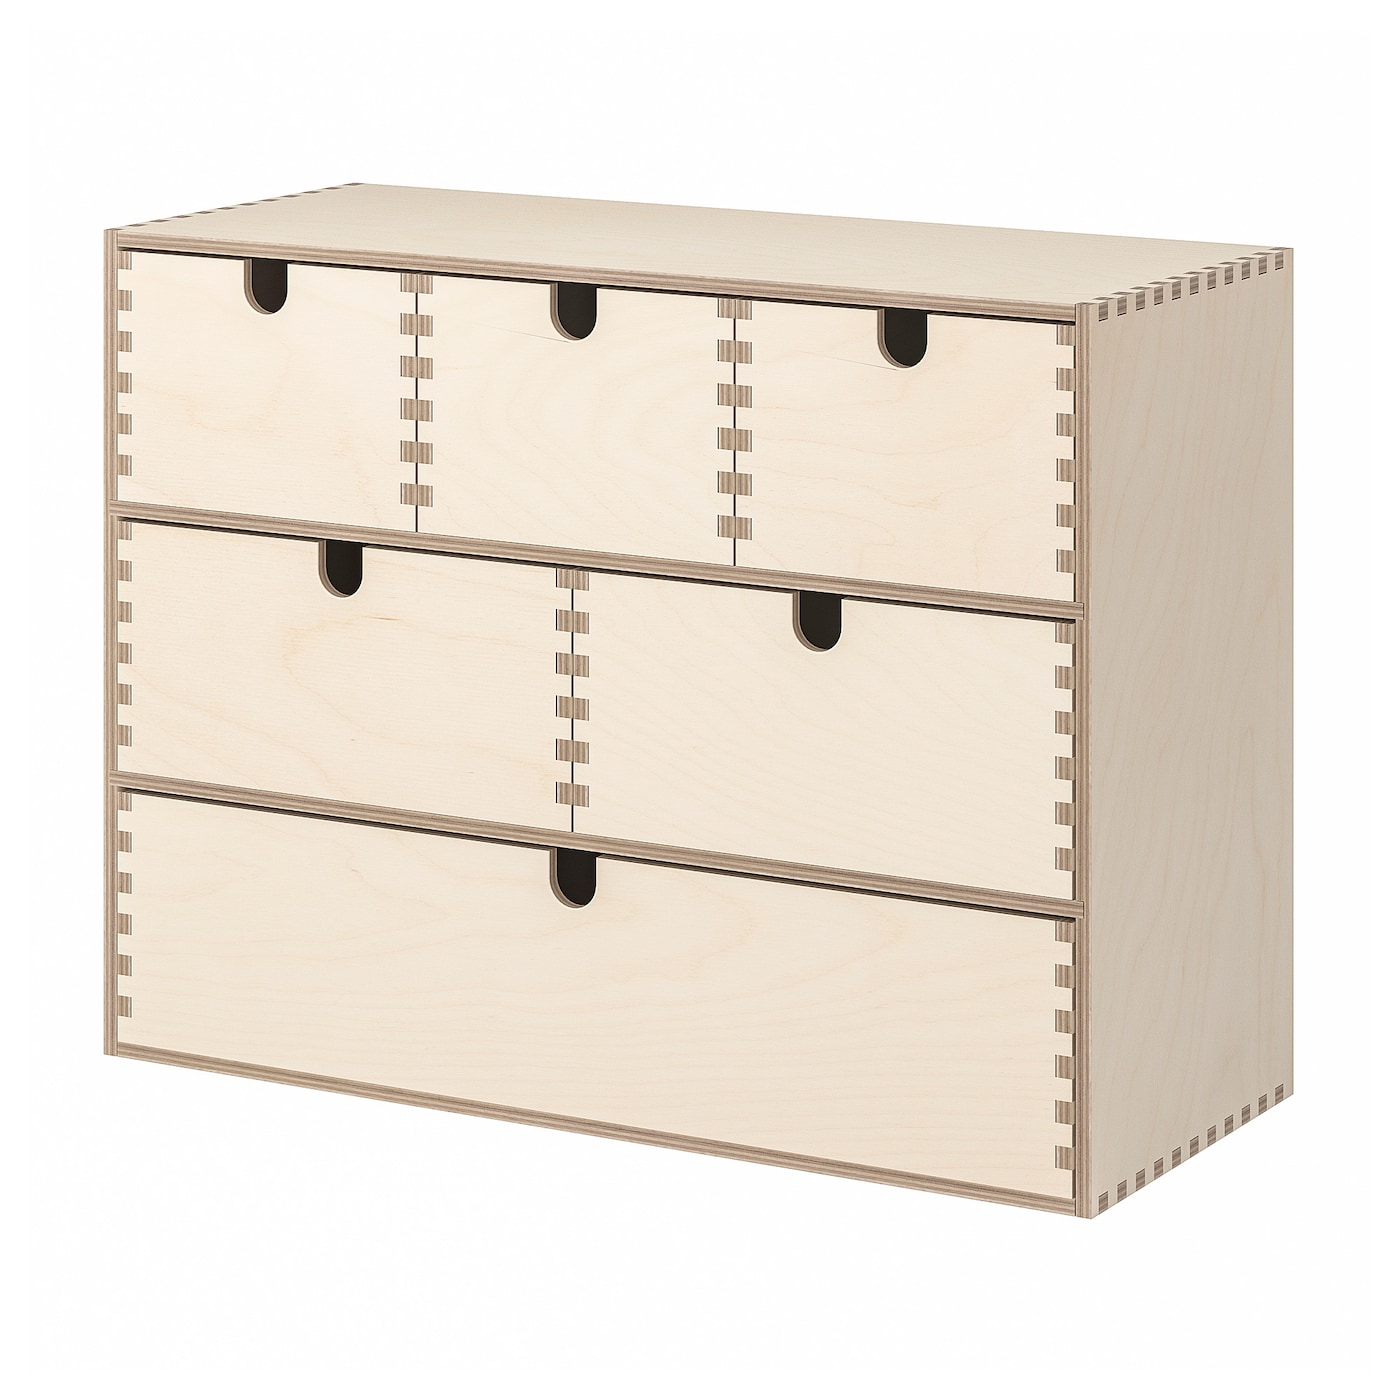 Office Moppe Mini Chest of drawers untreated wood Ikea Storage Desk